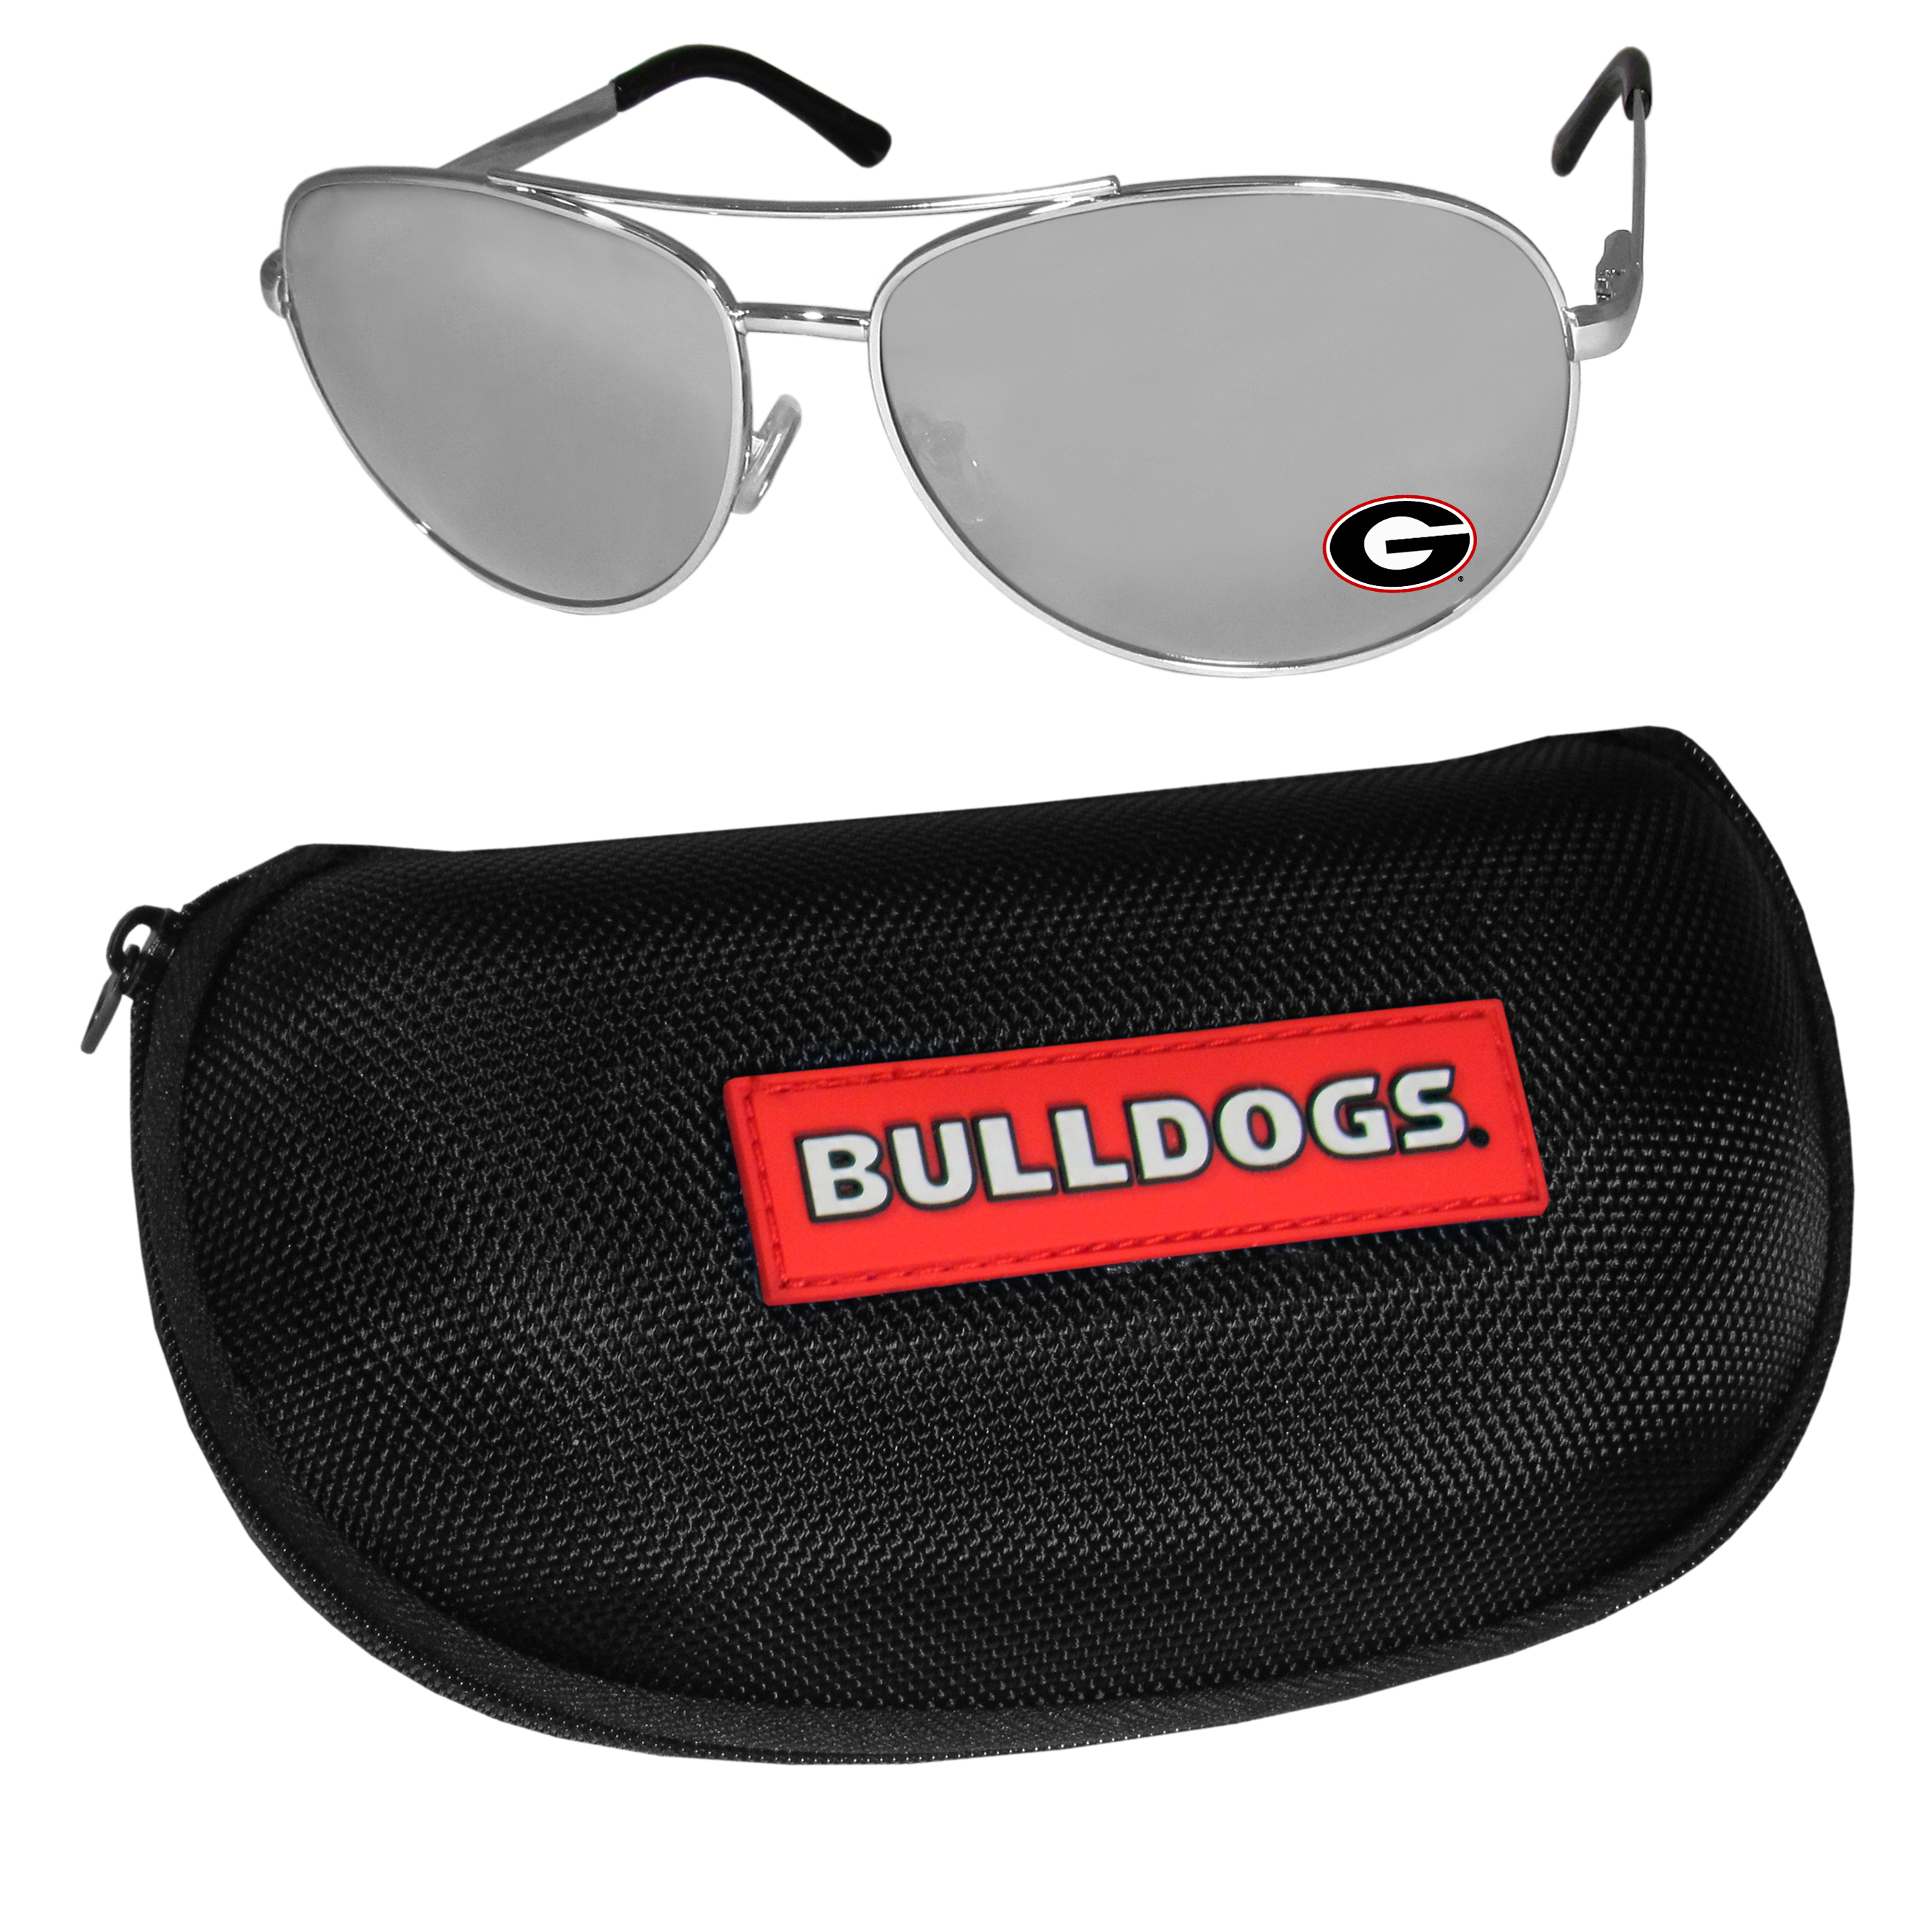 Georgia Bulldogs Aviator Sunglasses and Zippered Carrying Case - Aviator sunglasses are truly an iconic retro fashion statement that never goes out-of-style. Our Georgia Bulldogs  aviator sunglasses pair this classic look with your love of the game. The iridium coated lenses reduce glare while driving, boating, golfing and their 100% UVA/UVB rating provides you with the maximum UV protection for all your outdoor activities. A millennial favorite, these affordable designer frames are the perfect eyewear accessory for a sports fan that is looking for high-quality at an affordable price. The durable, flex hinged frames are tough enough for hiking and camping or if you prefer sun bathing by the pool or on the beach these shades will really stand the test of time. The sunglasses come with a hard shell zippered case which has a large team logo on the lid that will make even the most die-hard fan proud!